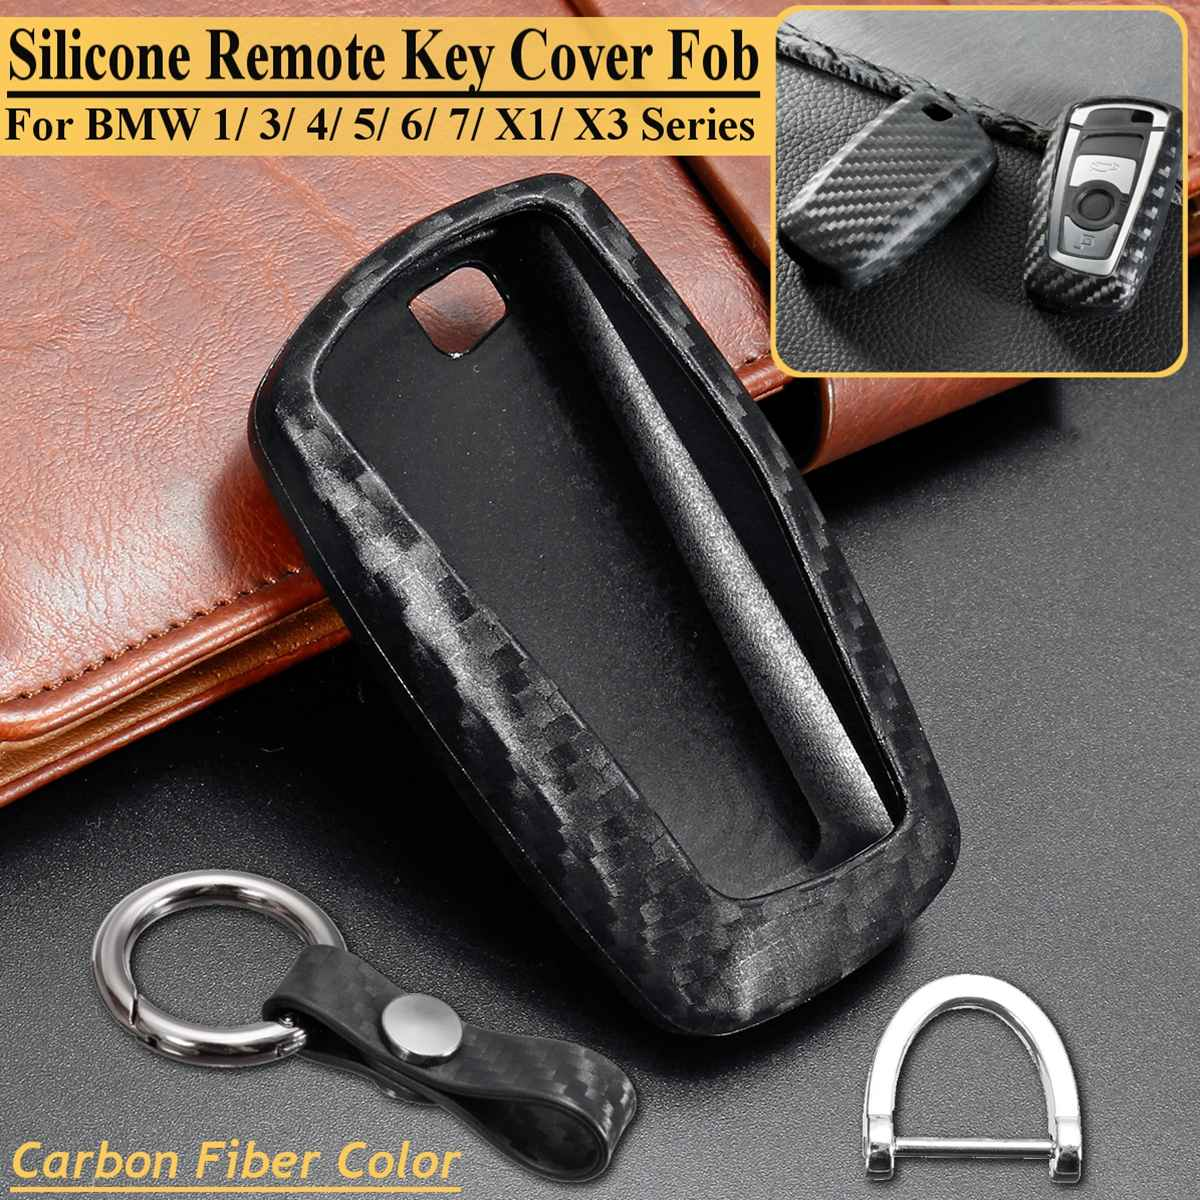 1 Pcs Car Auto Carbon Silicone Key Shell Cover Case For Bmw F05 F10 F20 F30 Z4 X1 X4 X5 X6 X7 1 3 5 Series Accessories Styling To Win A High Admiration